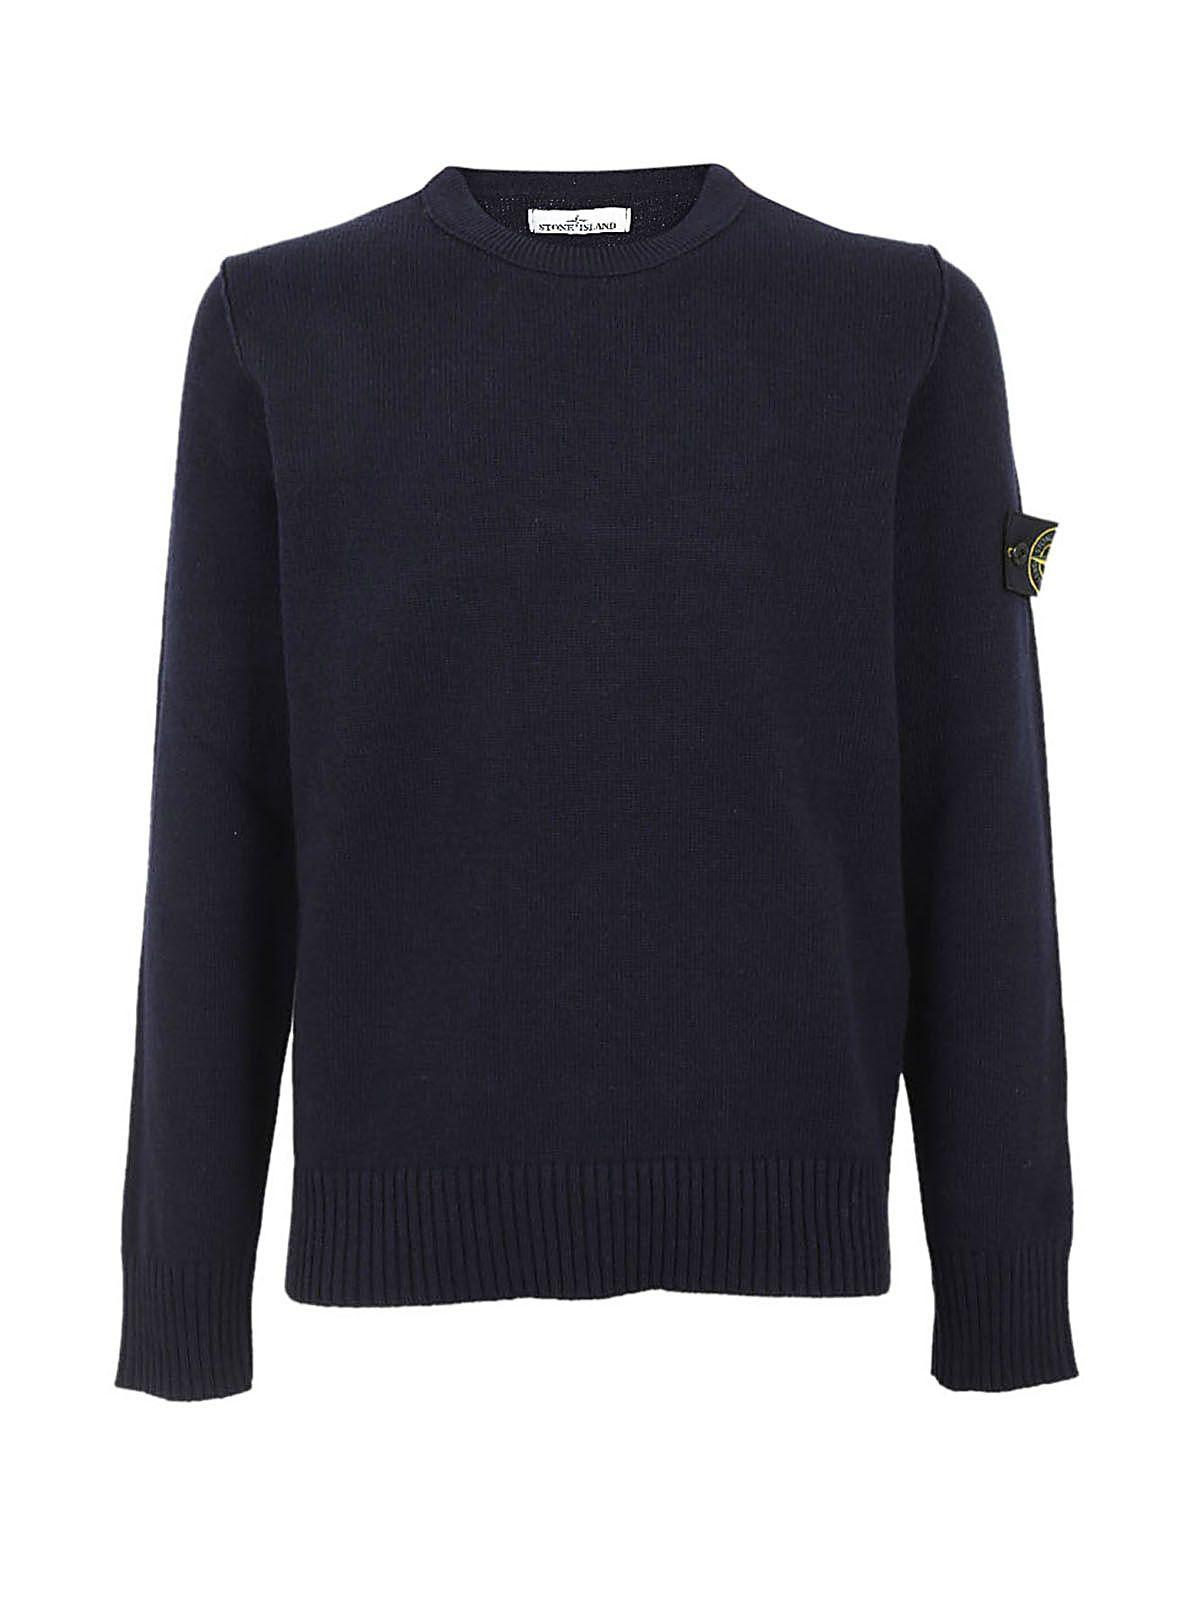 Stone Island Ravarino Sweater In Blue